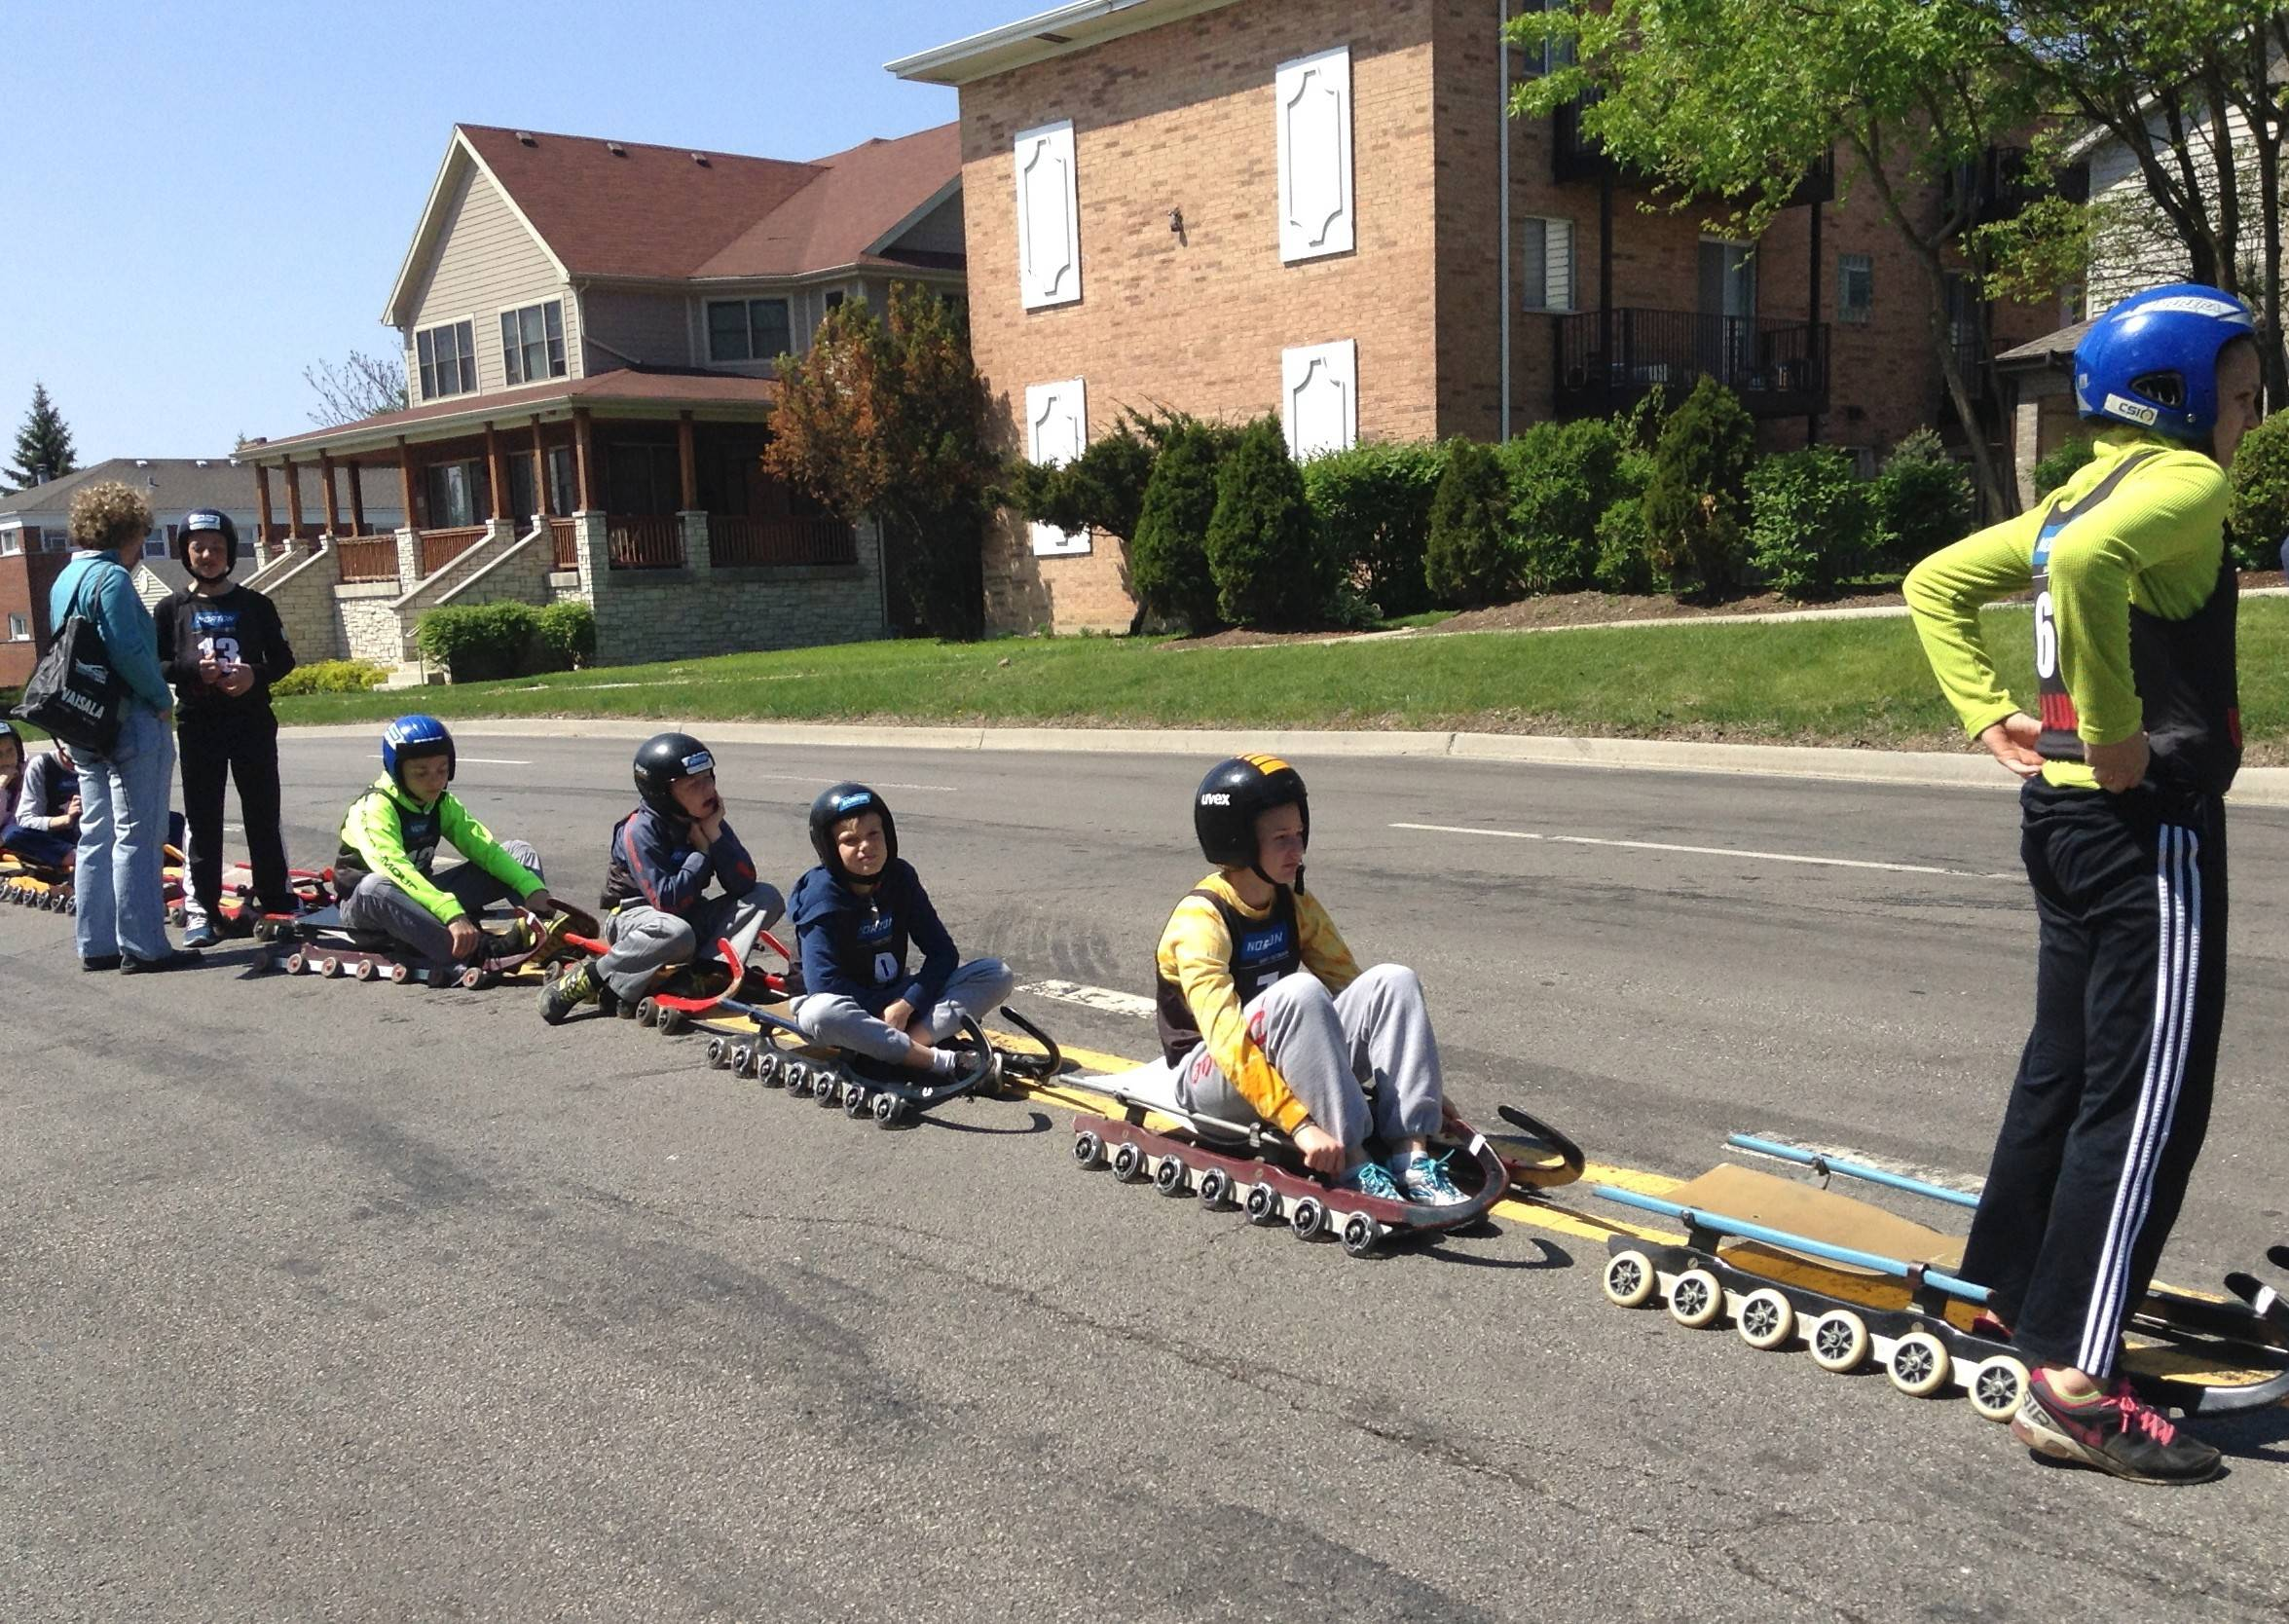 Young luge enthusiasts wait Sunday for their chance to slide down Cass Avenue in Westmont during a special summer tryout hosted by the U.S. Luge Assocation. Youngsters who performed well will have a chance to earn a spot on the U.S. Junior Luge Team.